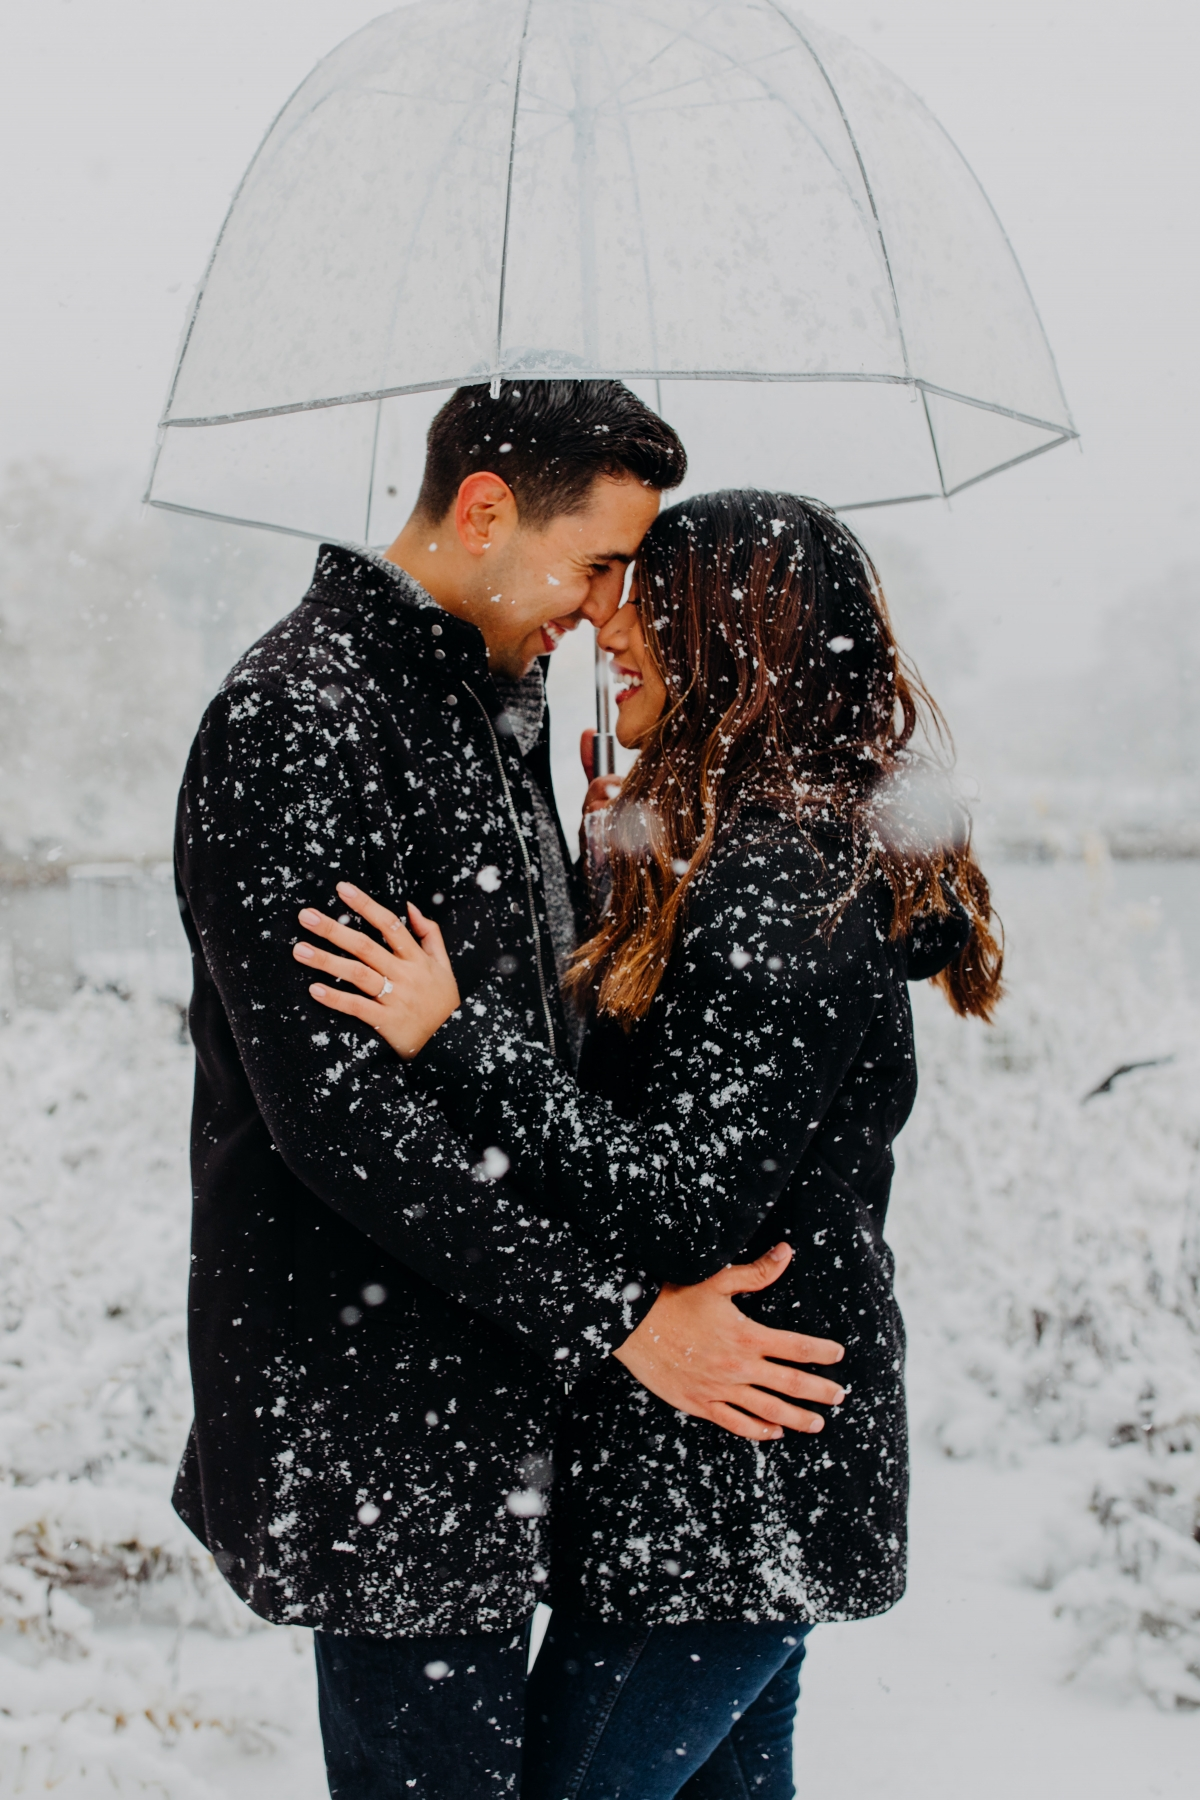 Snowy Chicago Proposal at Lincoln Park Zoo